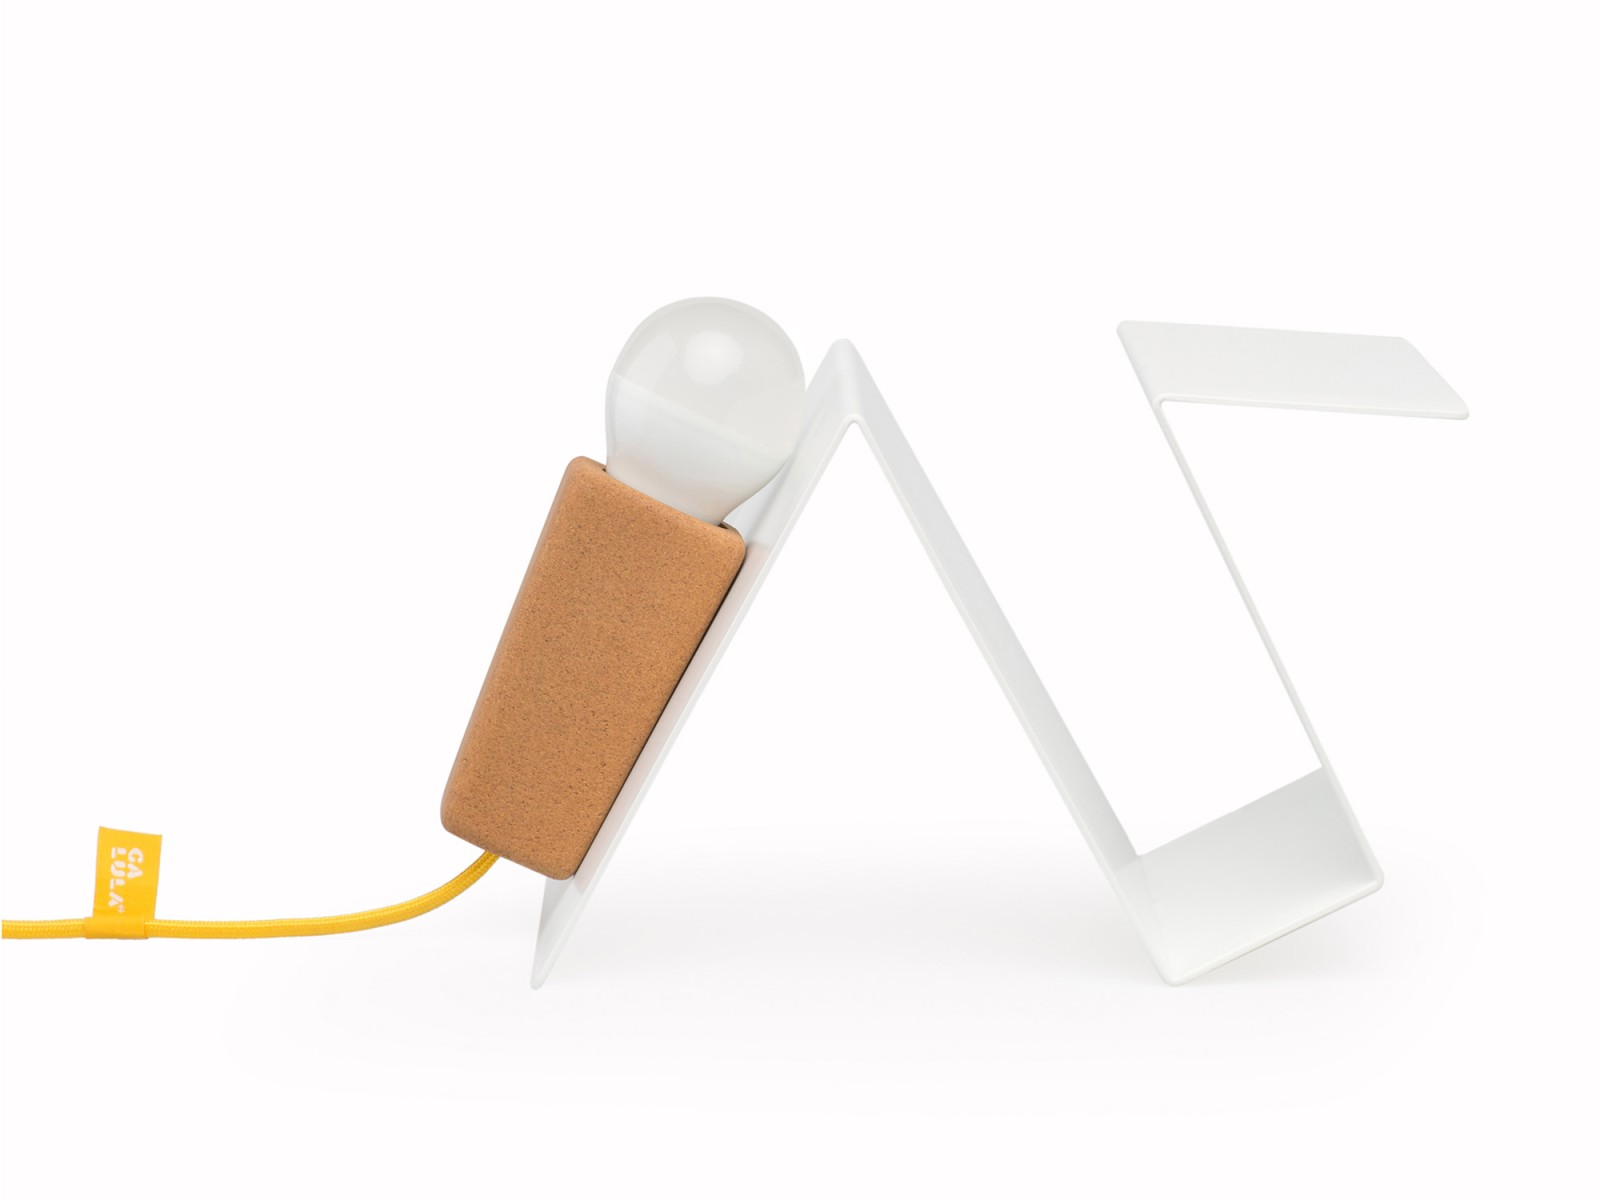 Glint #3 Desk Lamp White with Yellow Cable